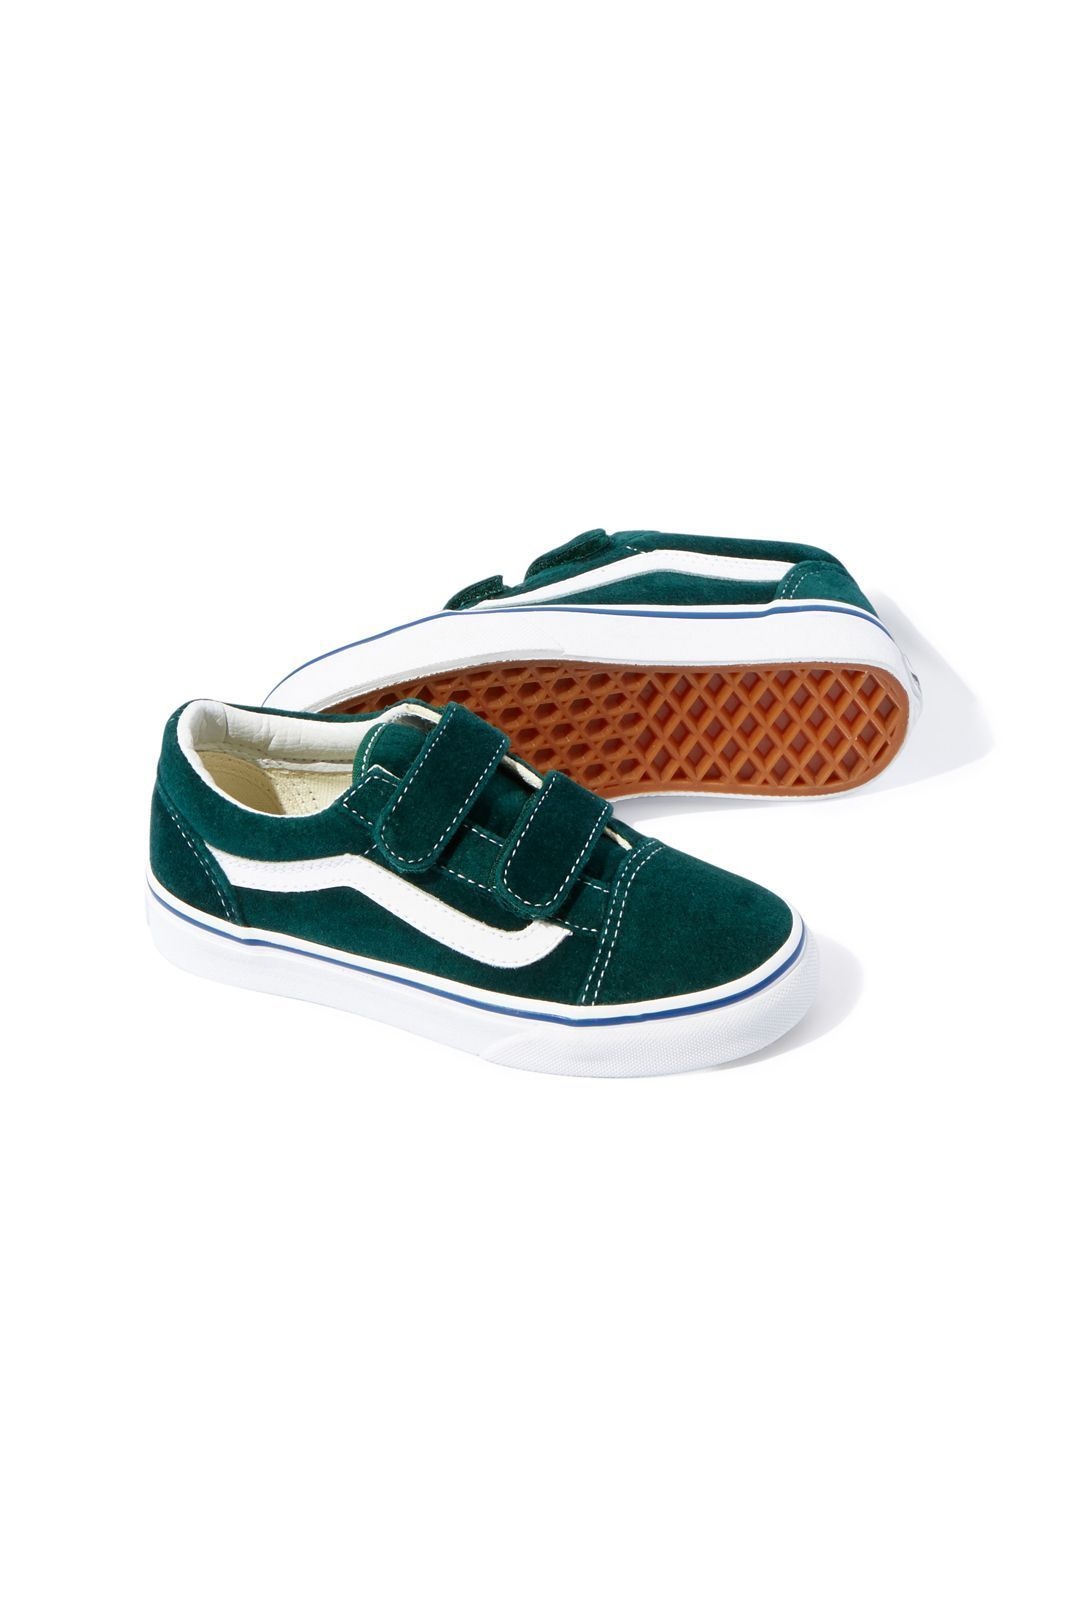 d381e42e669c Don t know why but I really want velcro vans.